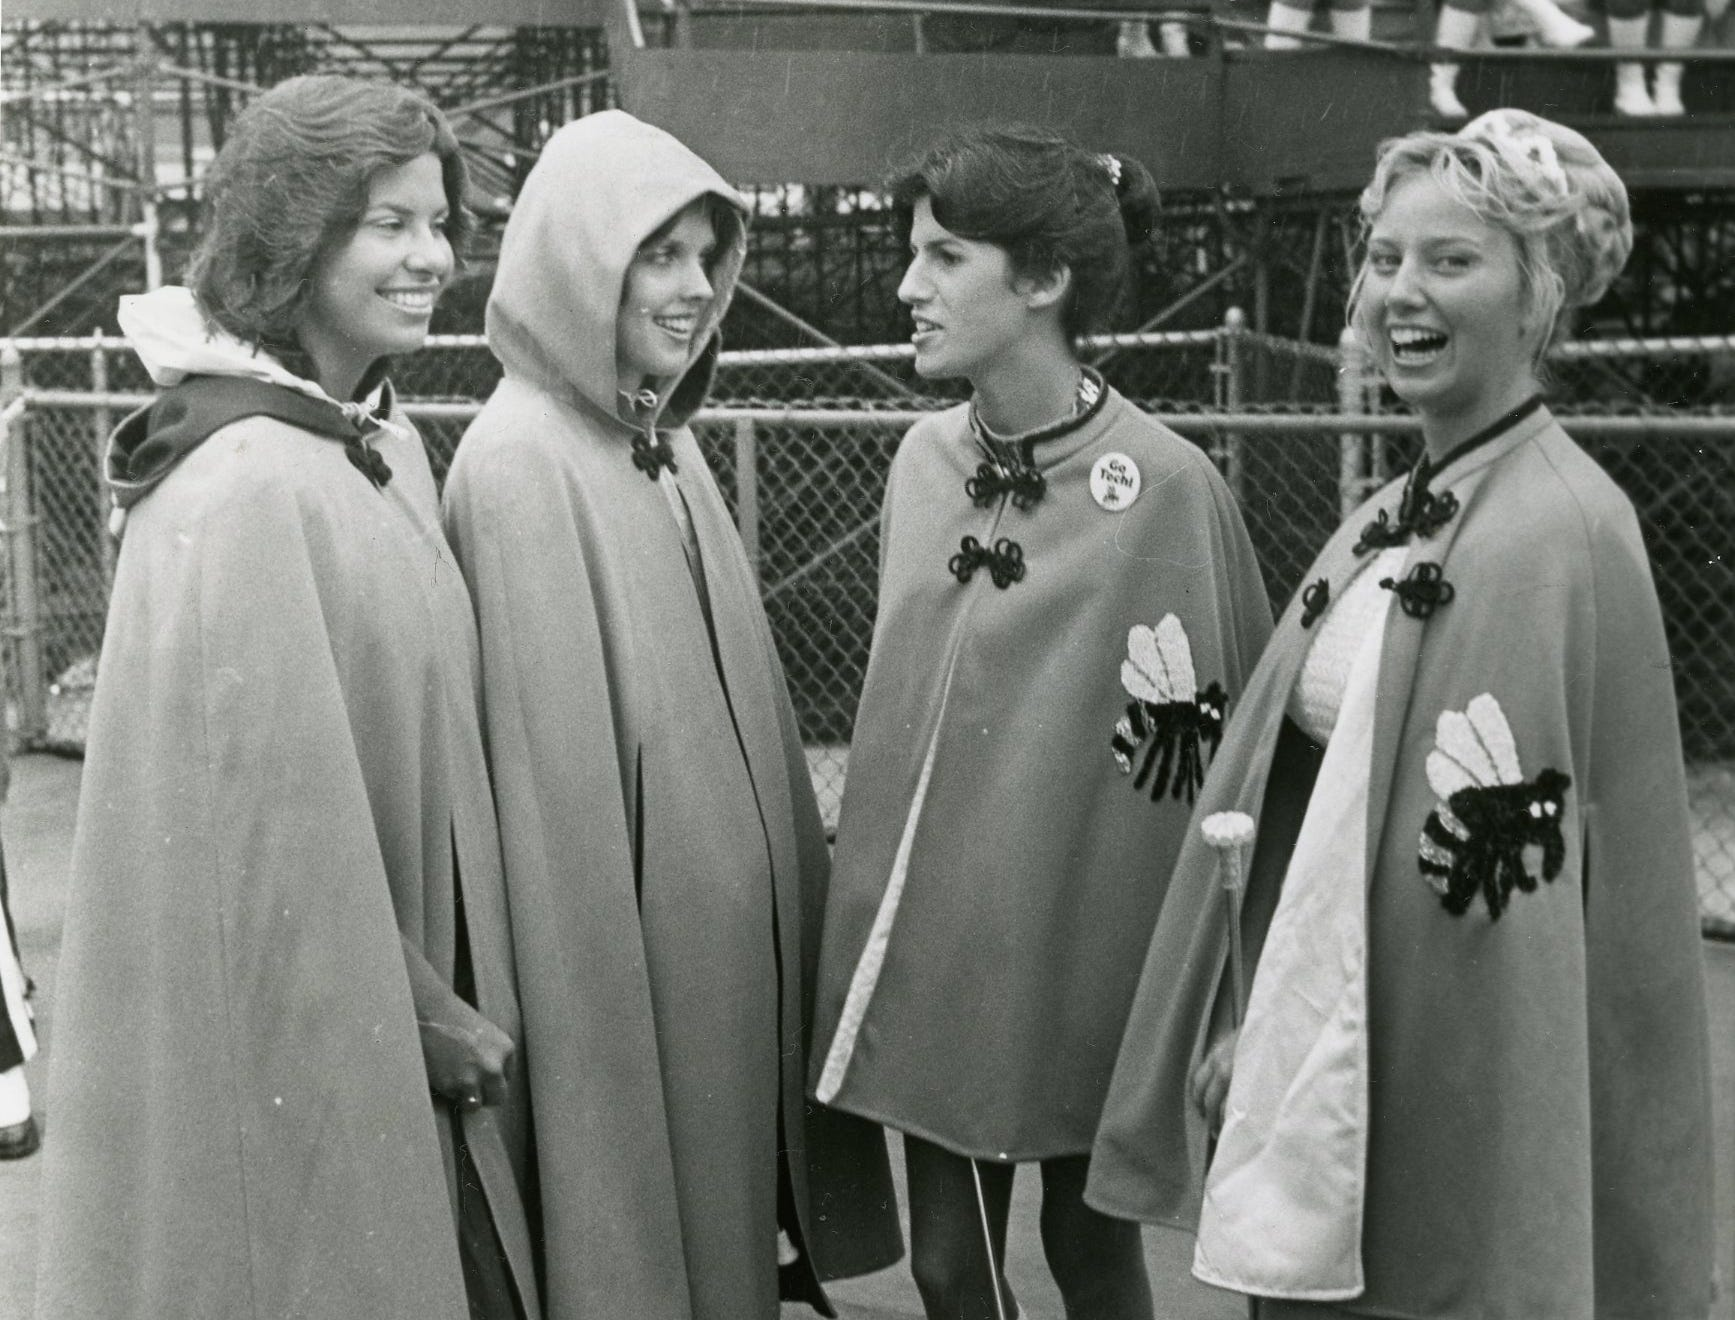 These four former Doyle High School majorettes meet again as UT and Georgia Tech faced off in an October, 1977 game. Pictured are Debra McCarrell, Kim Helton, Lisa Ballard and Kathy Thrower.